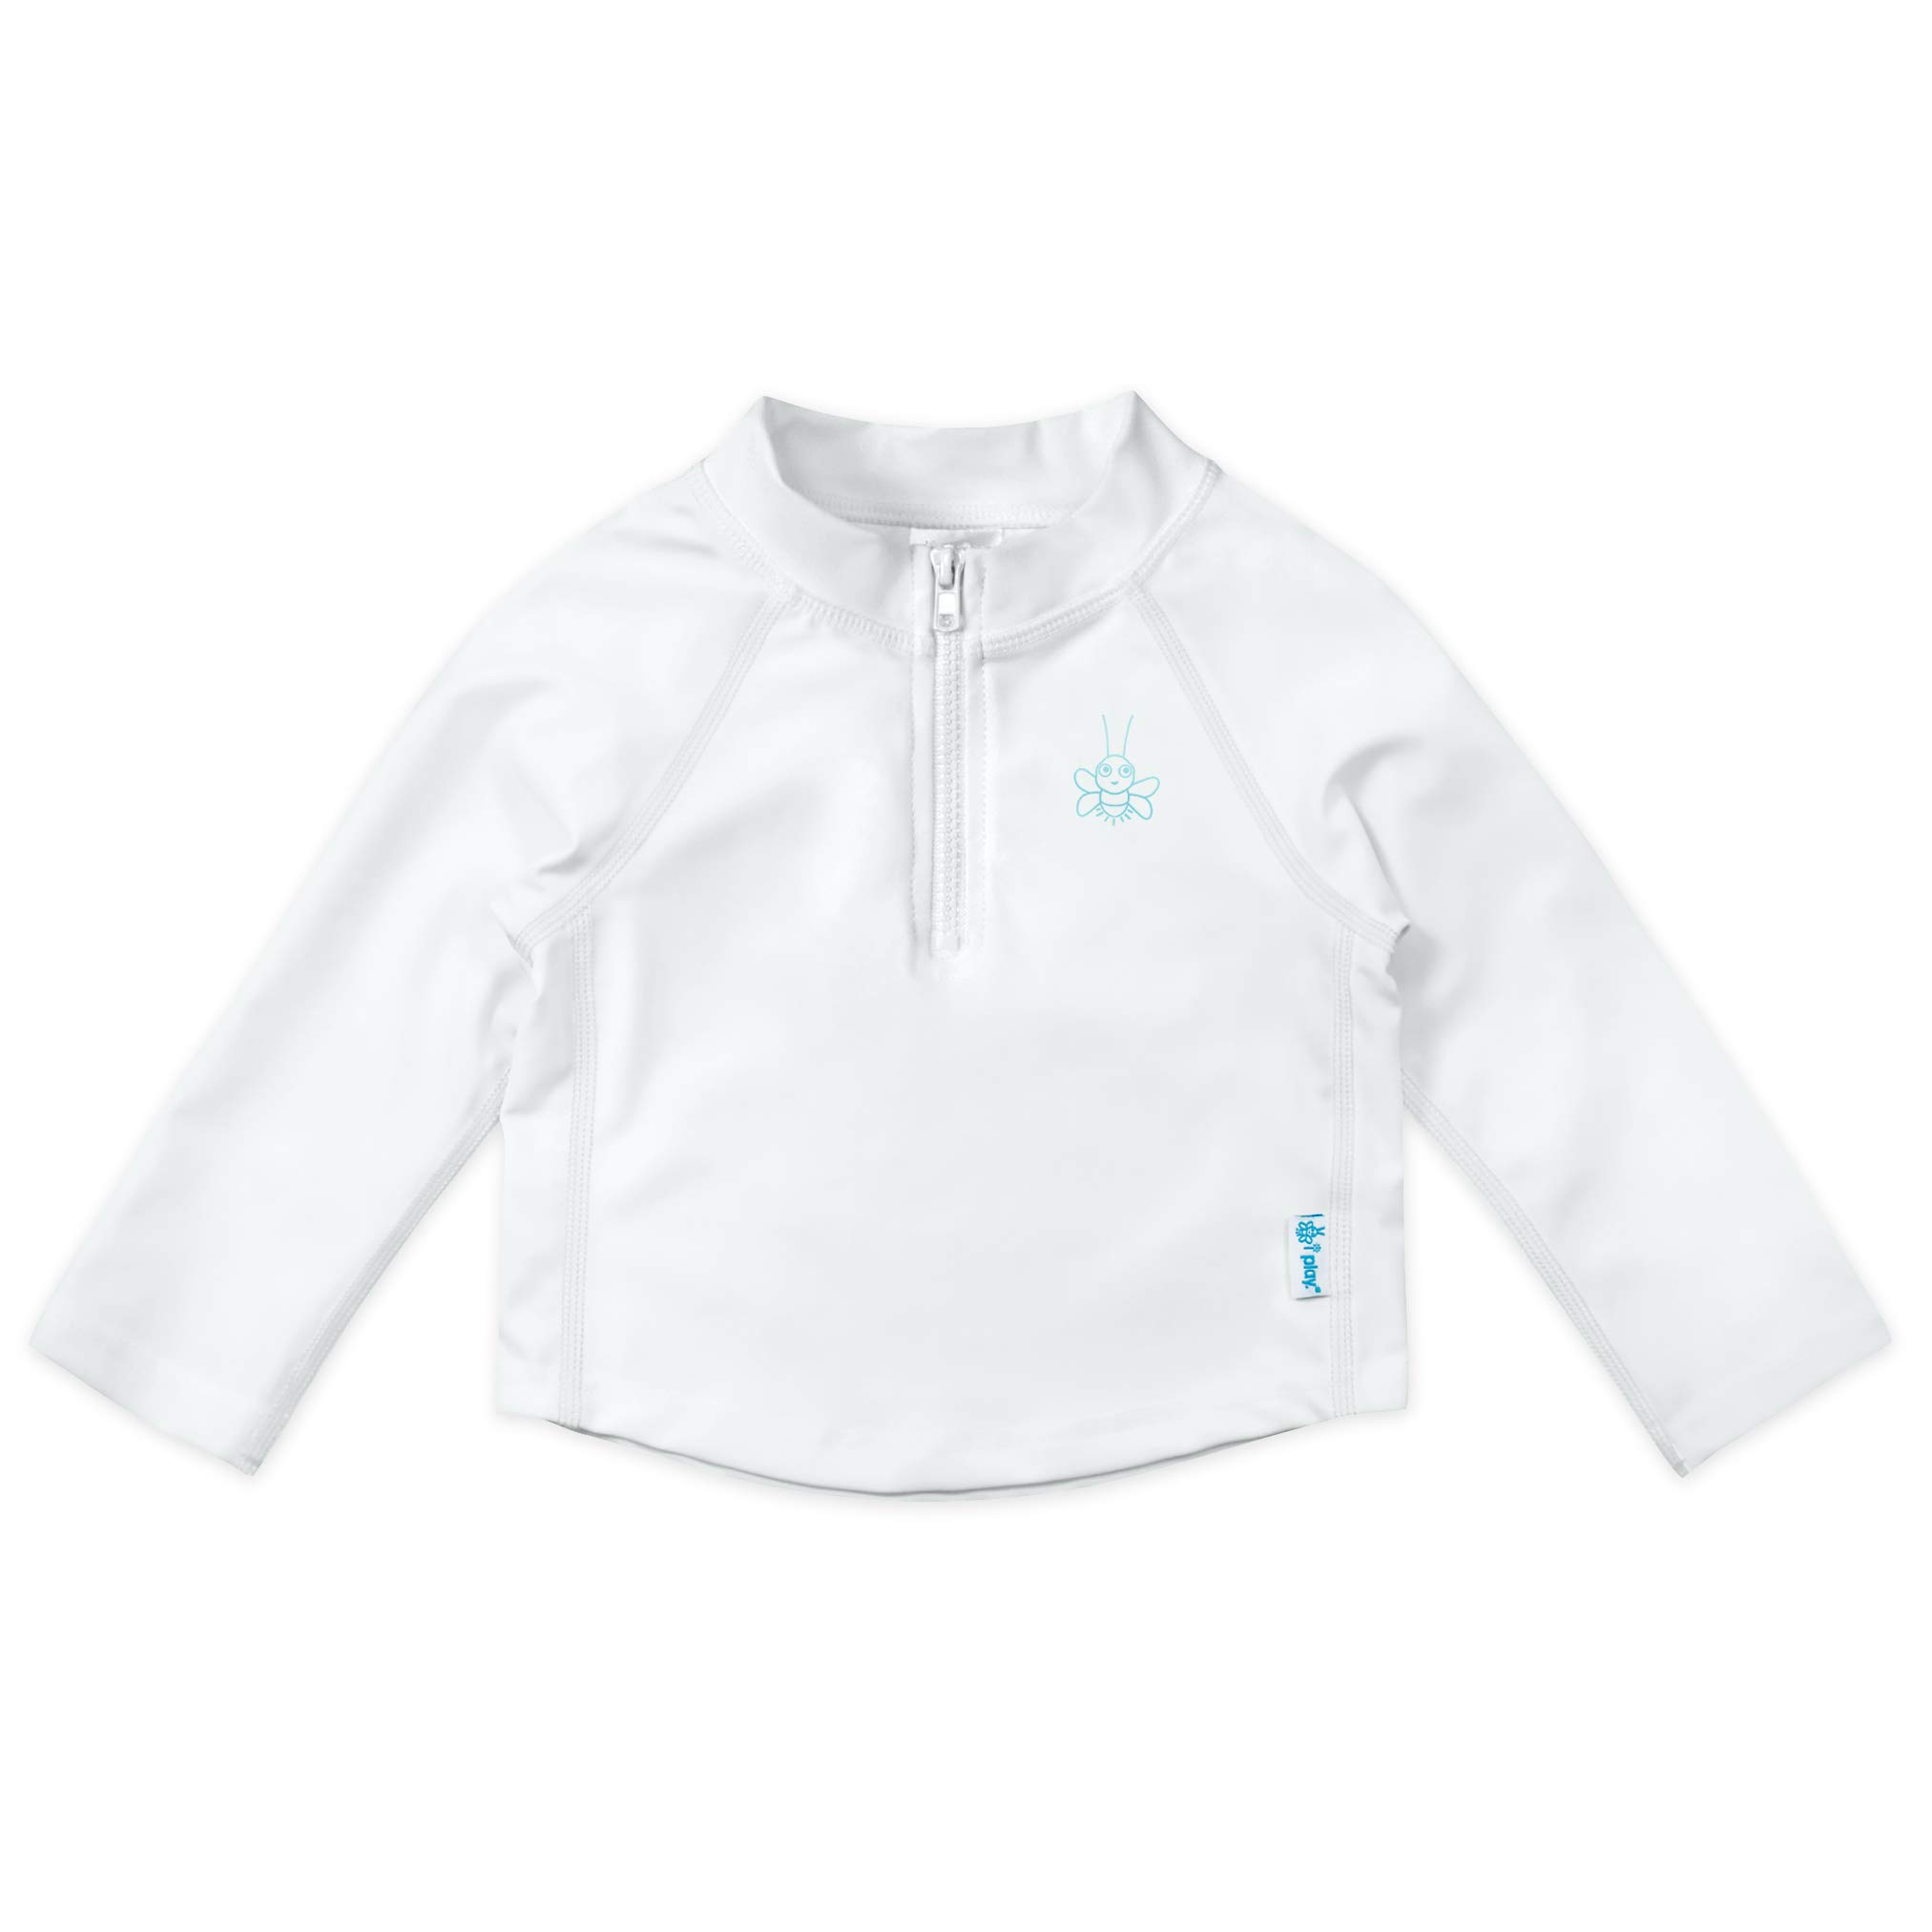 i play. Long Sleeve Rashguard Shirt | All-day UPF 50+ sun protection—wet or dry,White Zip,12 months